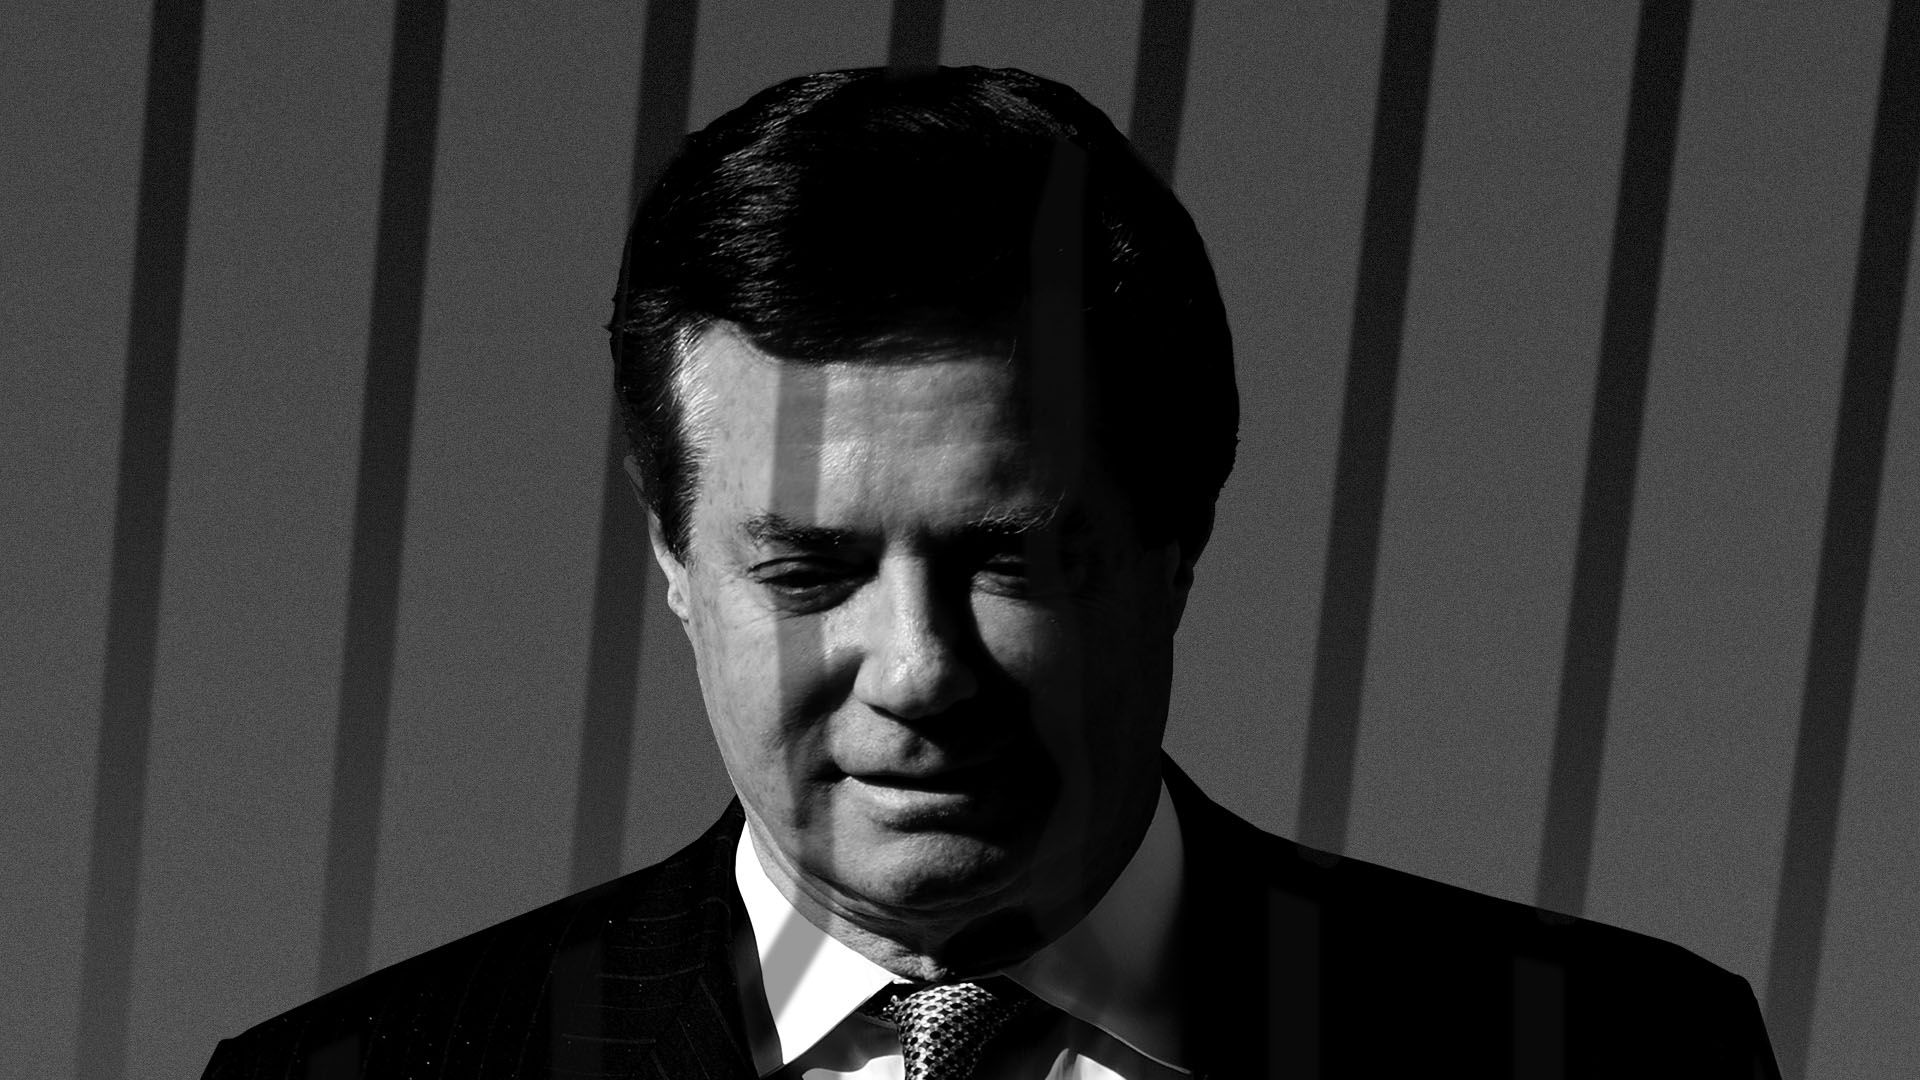 Illustration of Paul Manafort with shadows of jail bars over him